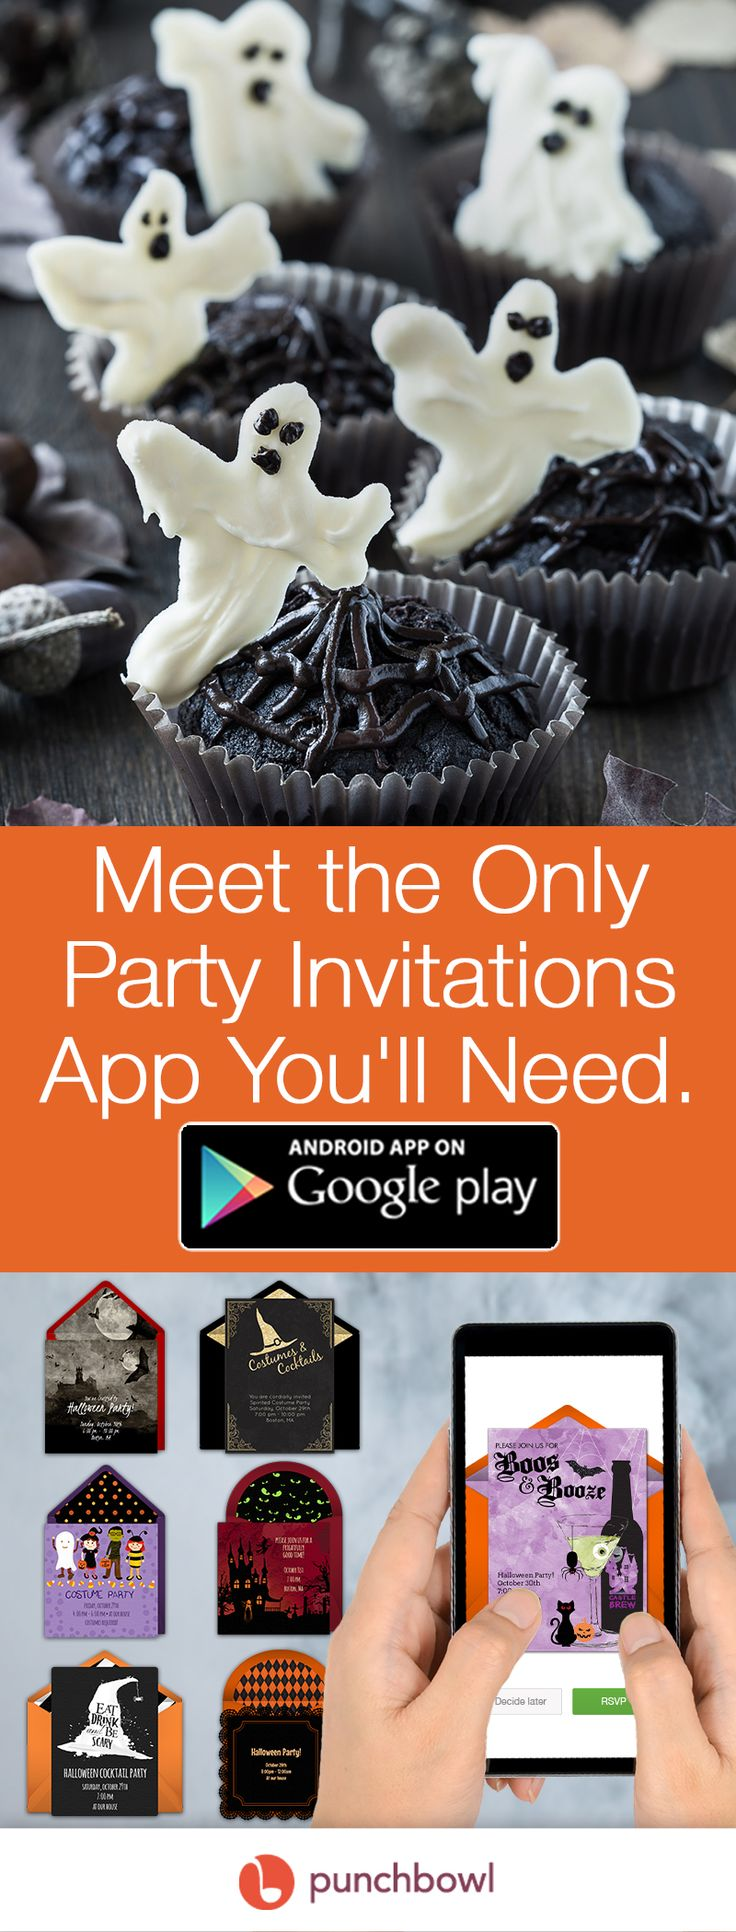 Paper invites are too formal, and emails are too casual. Get it just right with online invitations from Punchbowl. We've got everything you need for your Halloween party. https://play.google.com/store/apps/details?id=com.punchbowl.mobile&hl=en/?utm_source=Pinterest&utm_medium=123.3P